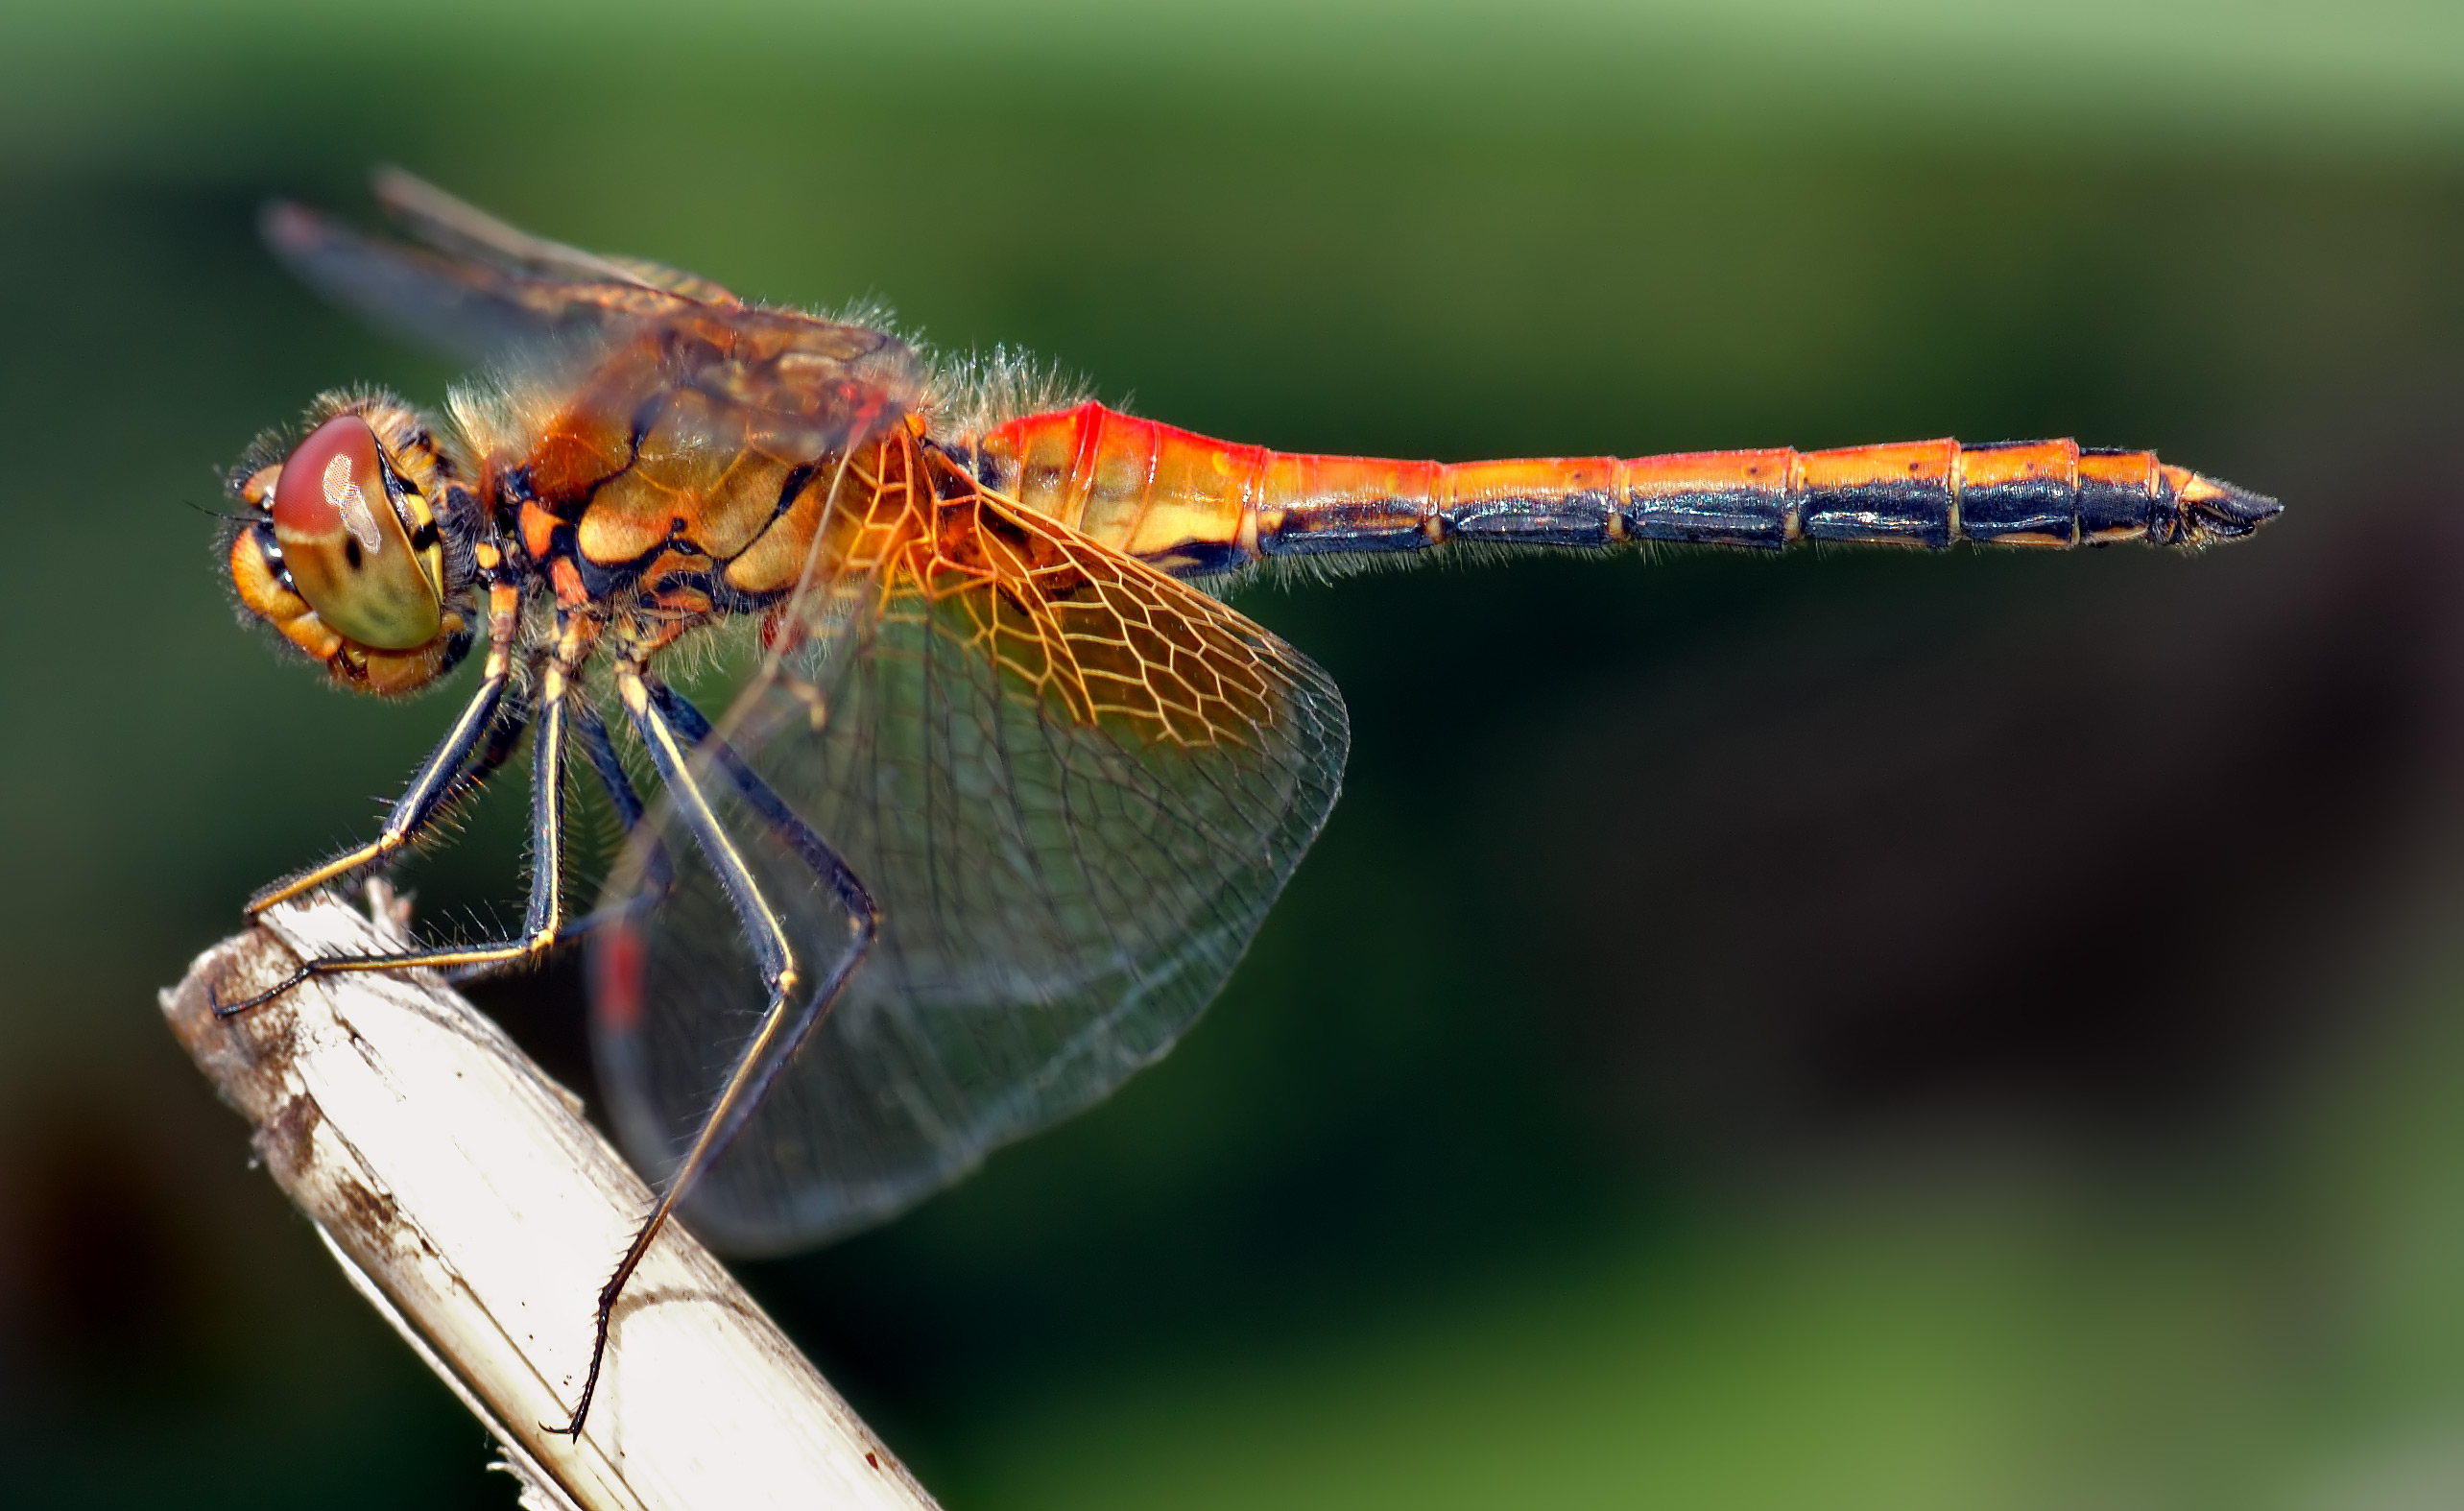 Dragonfly Wallpaper 2567x1574